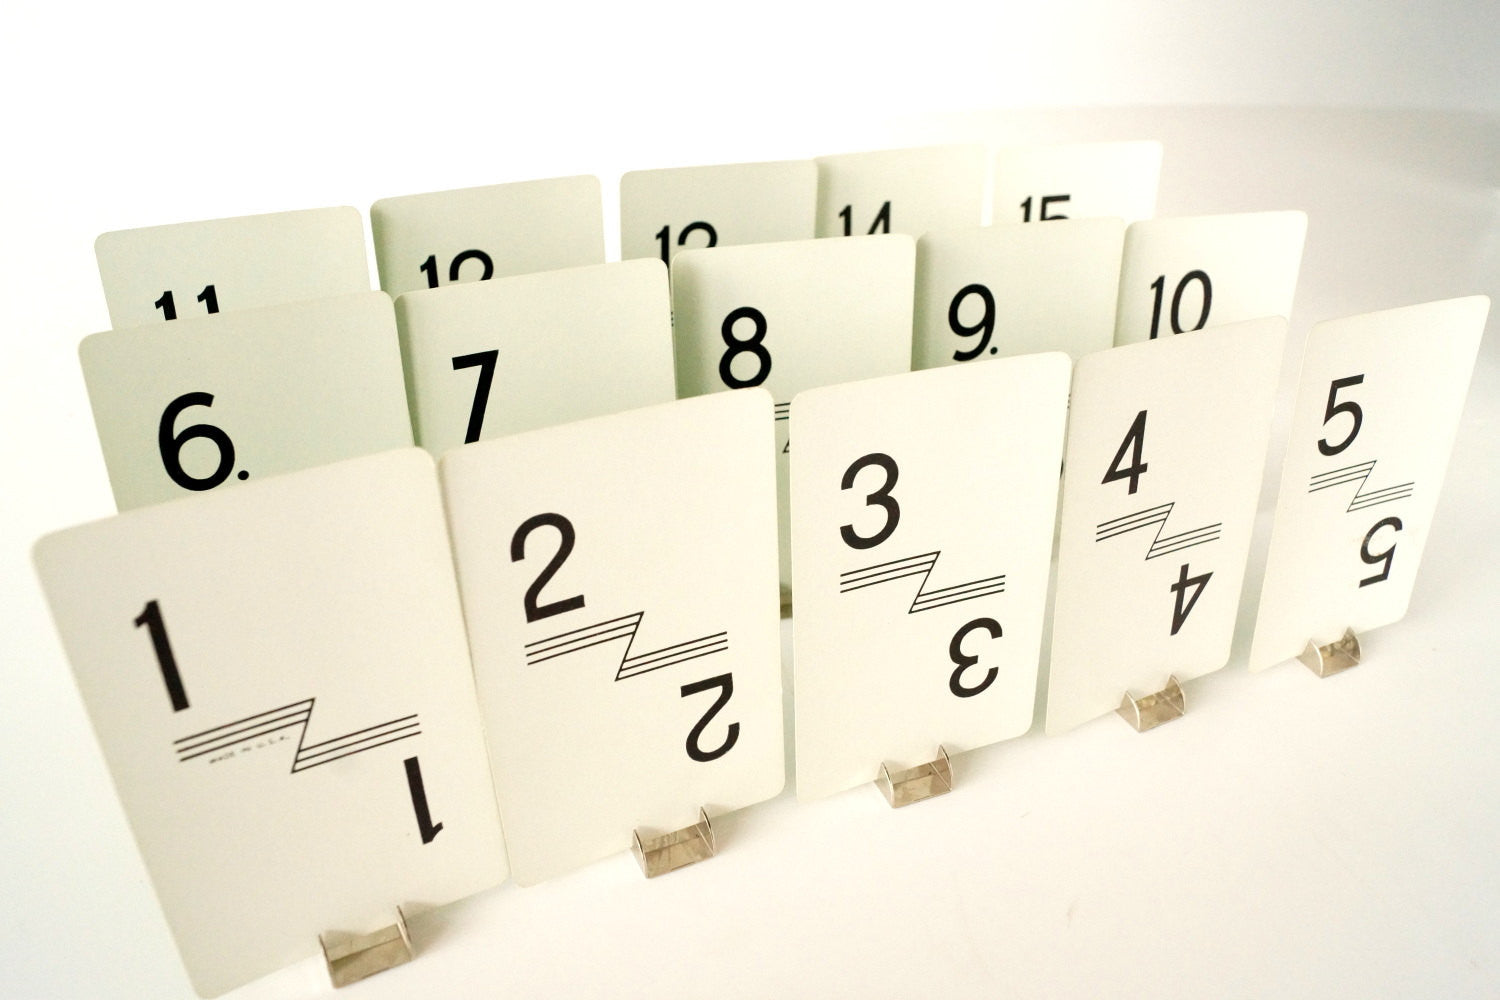 Vintage Number Cards Table Number Cards With Art Deco Line